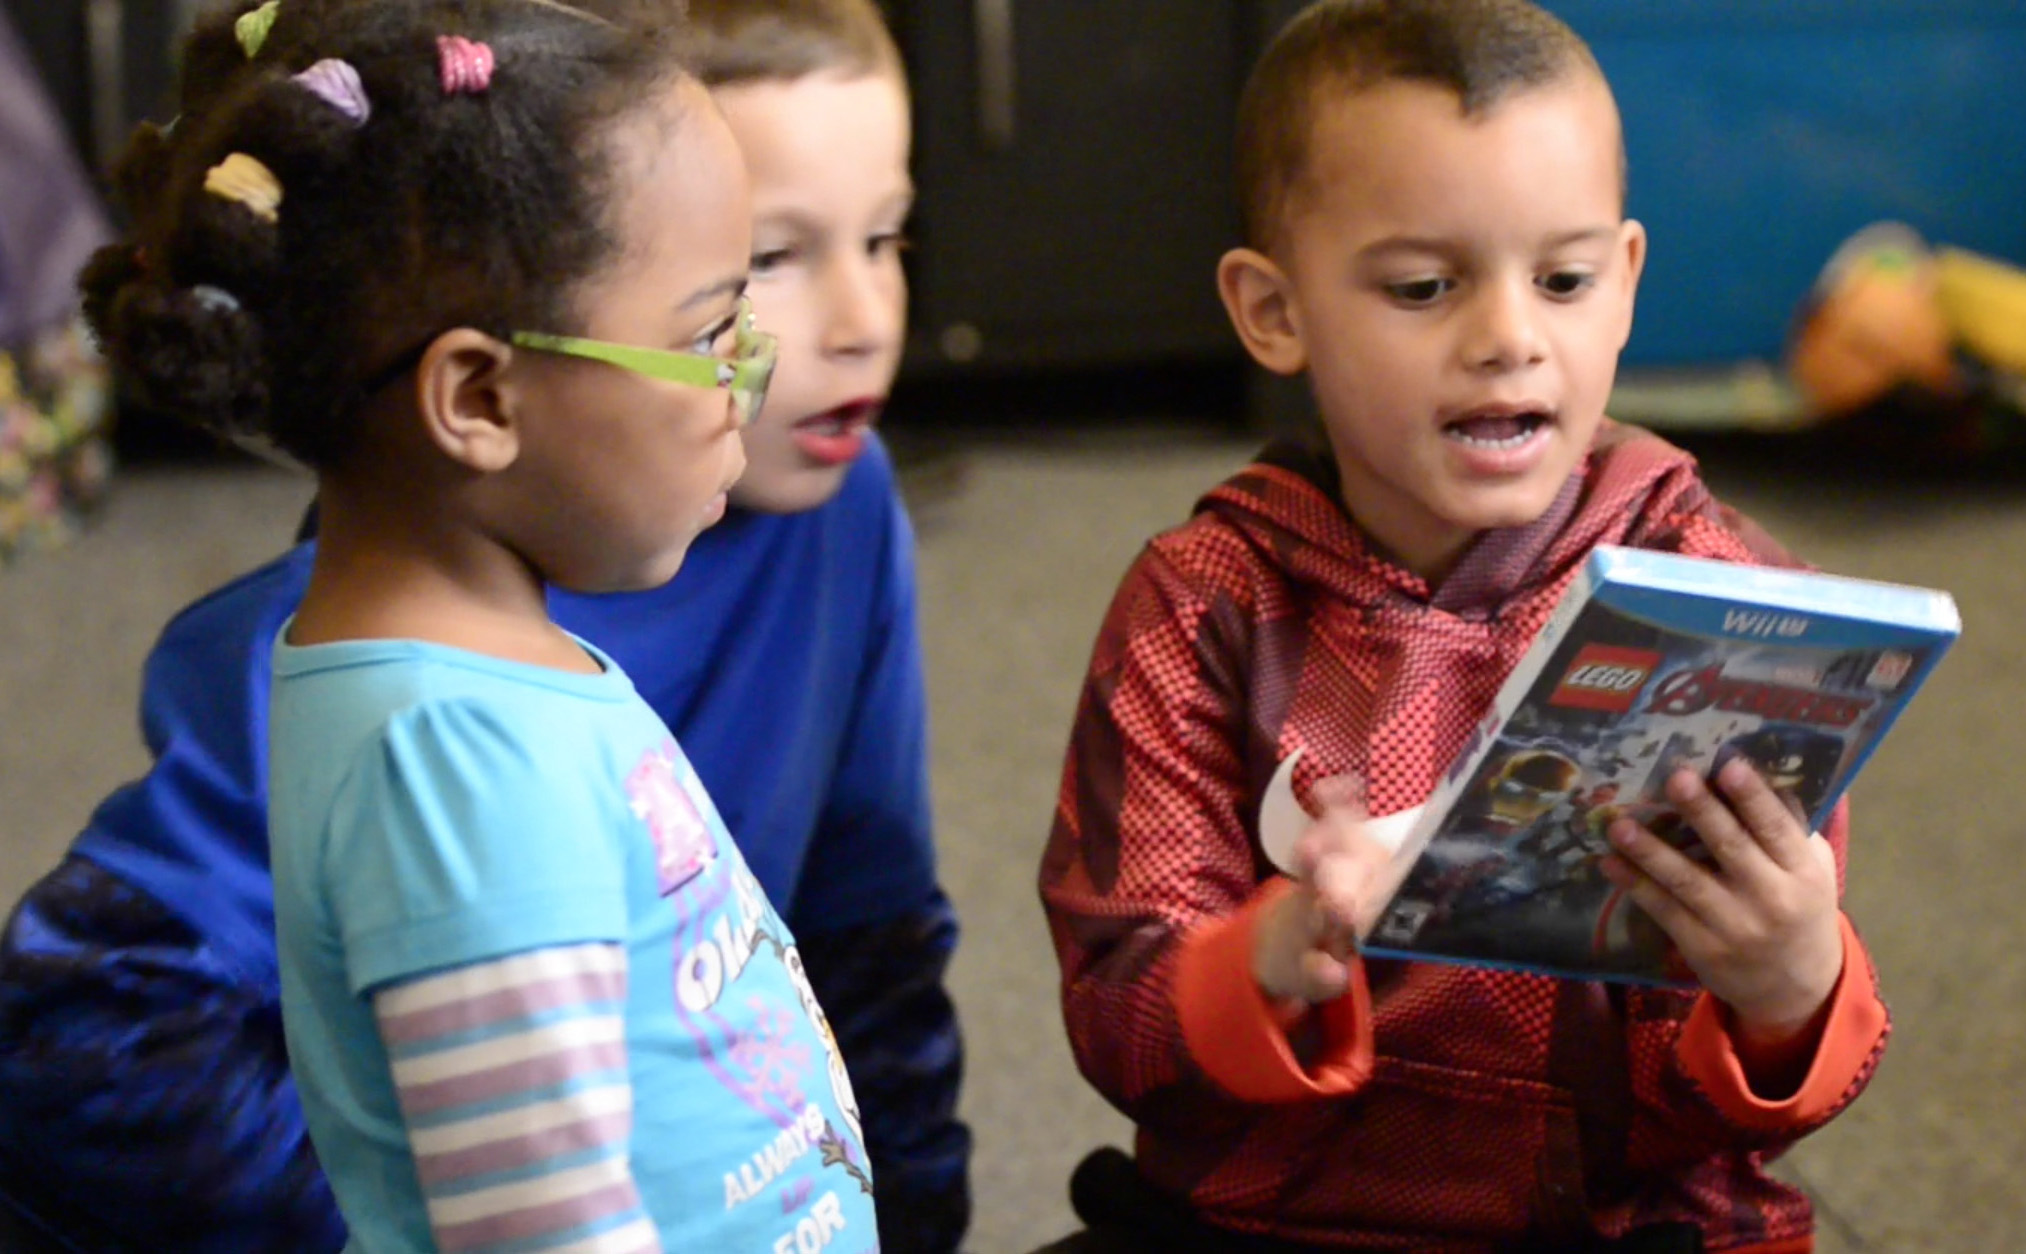 Tae, from right, opens presents with friends Malachi Pavlick, 7, and Kaliyah Boggs, 2. MRI scans in January and February revealed white spots that could be tumor regrowth on Tae's brain.